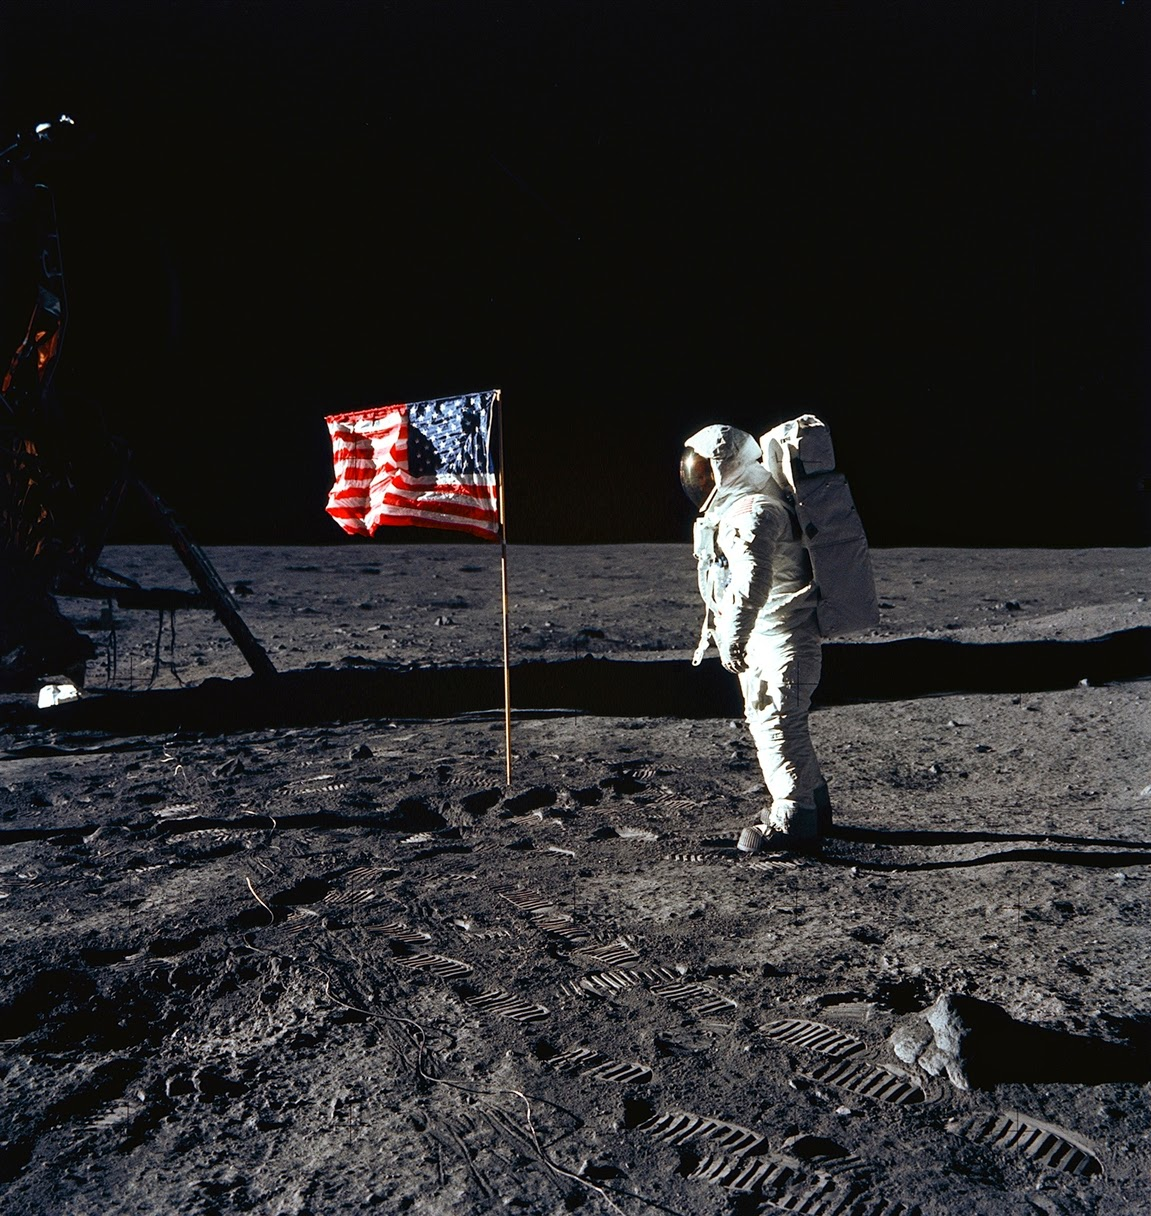 One giant leap for preservation: Protecting Moon landing sites